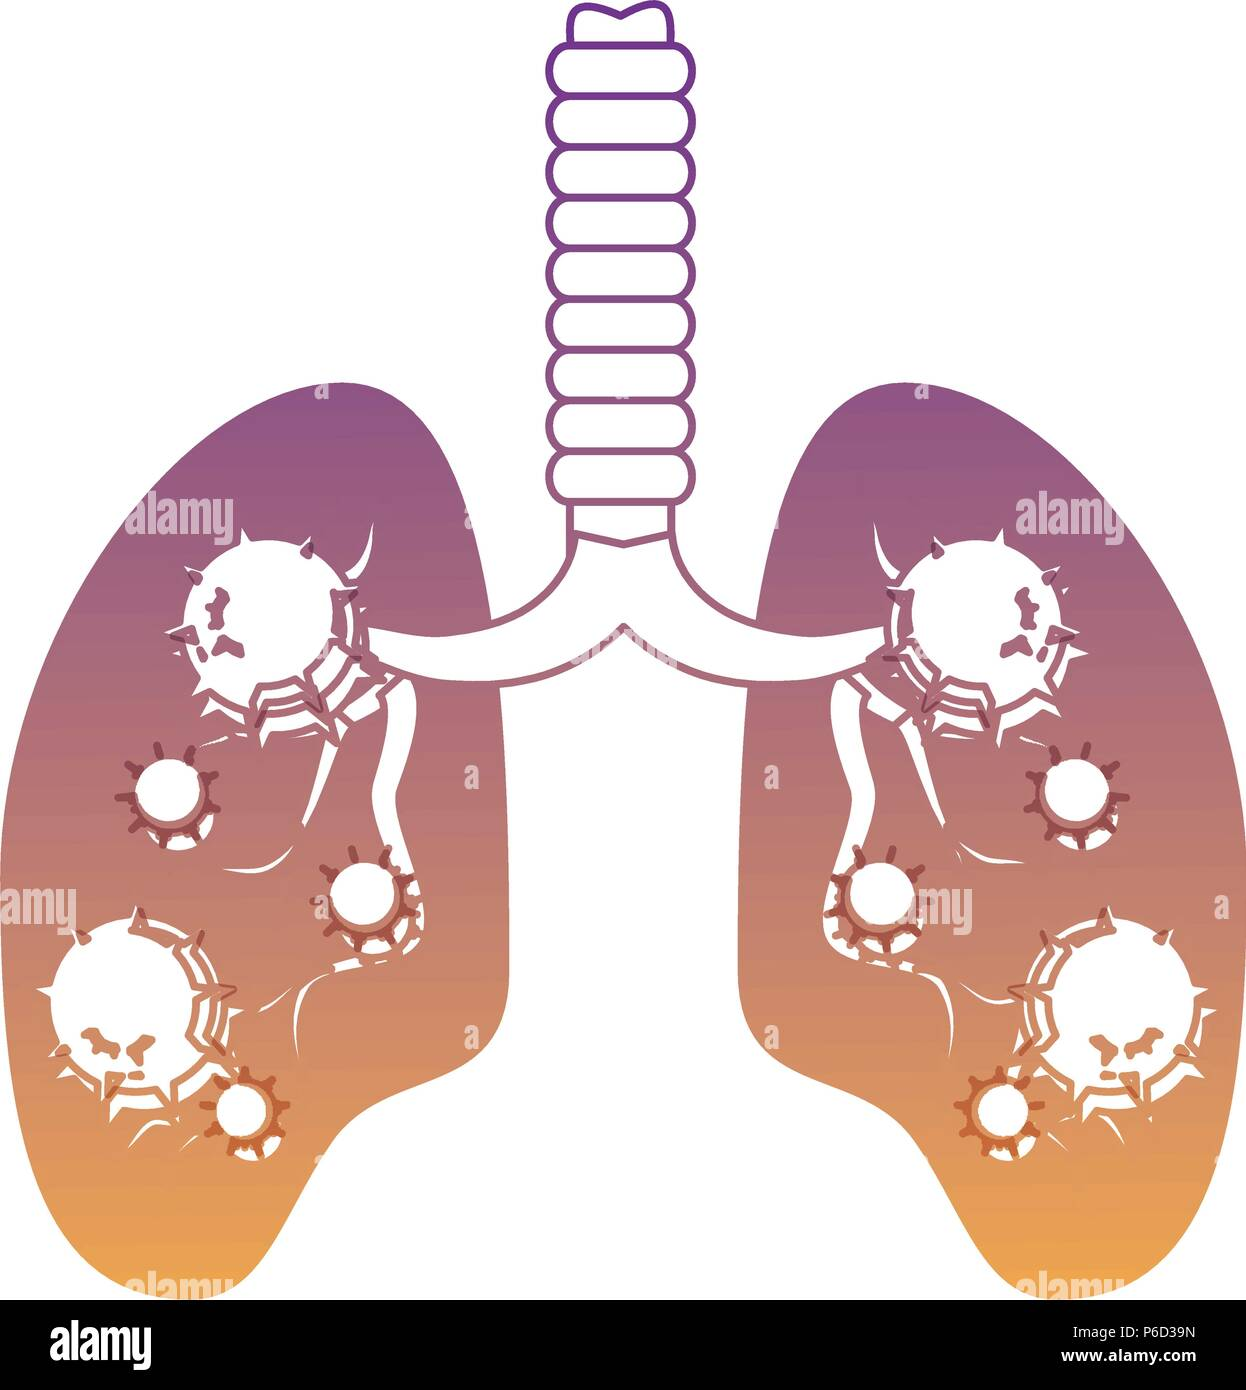 Lungs with an infection  over white background, vector illustration - Stock Image